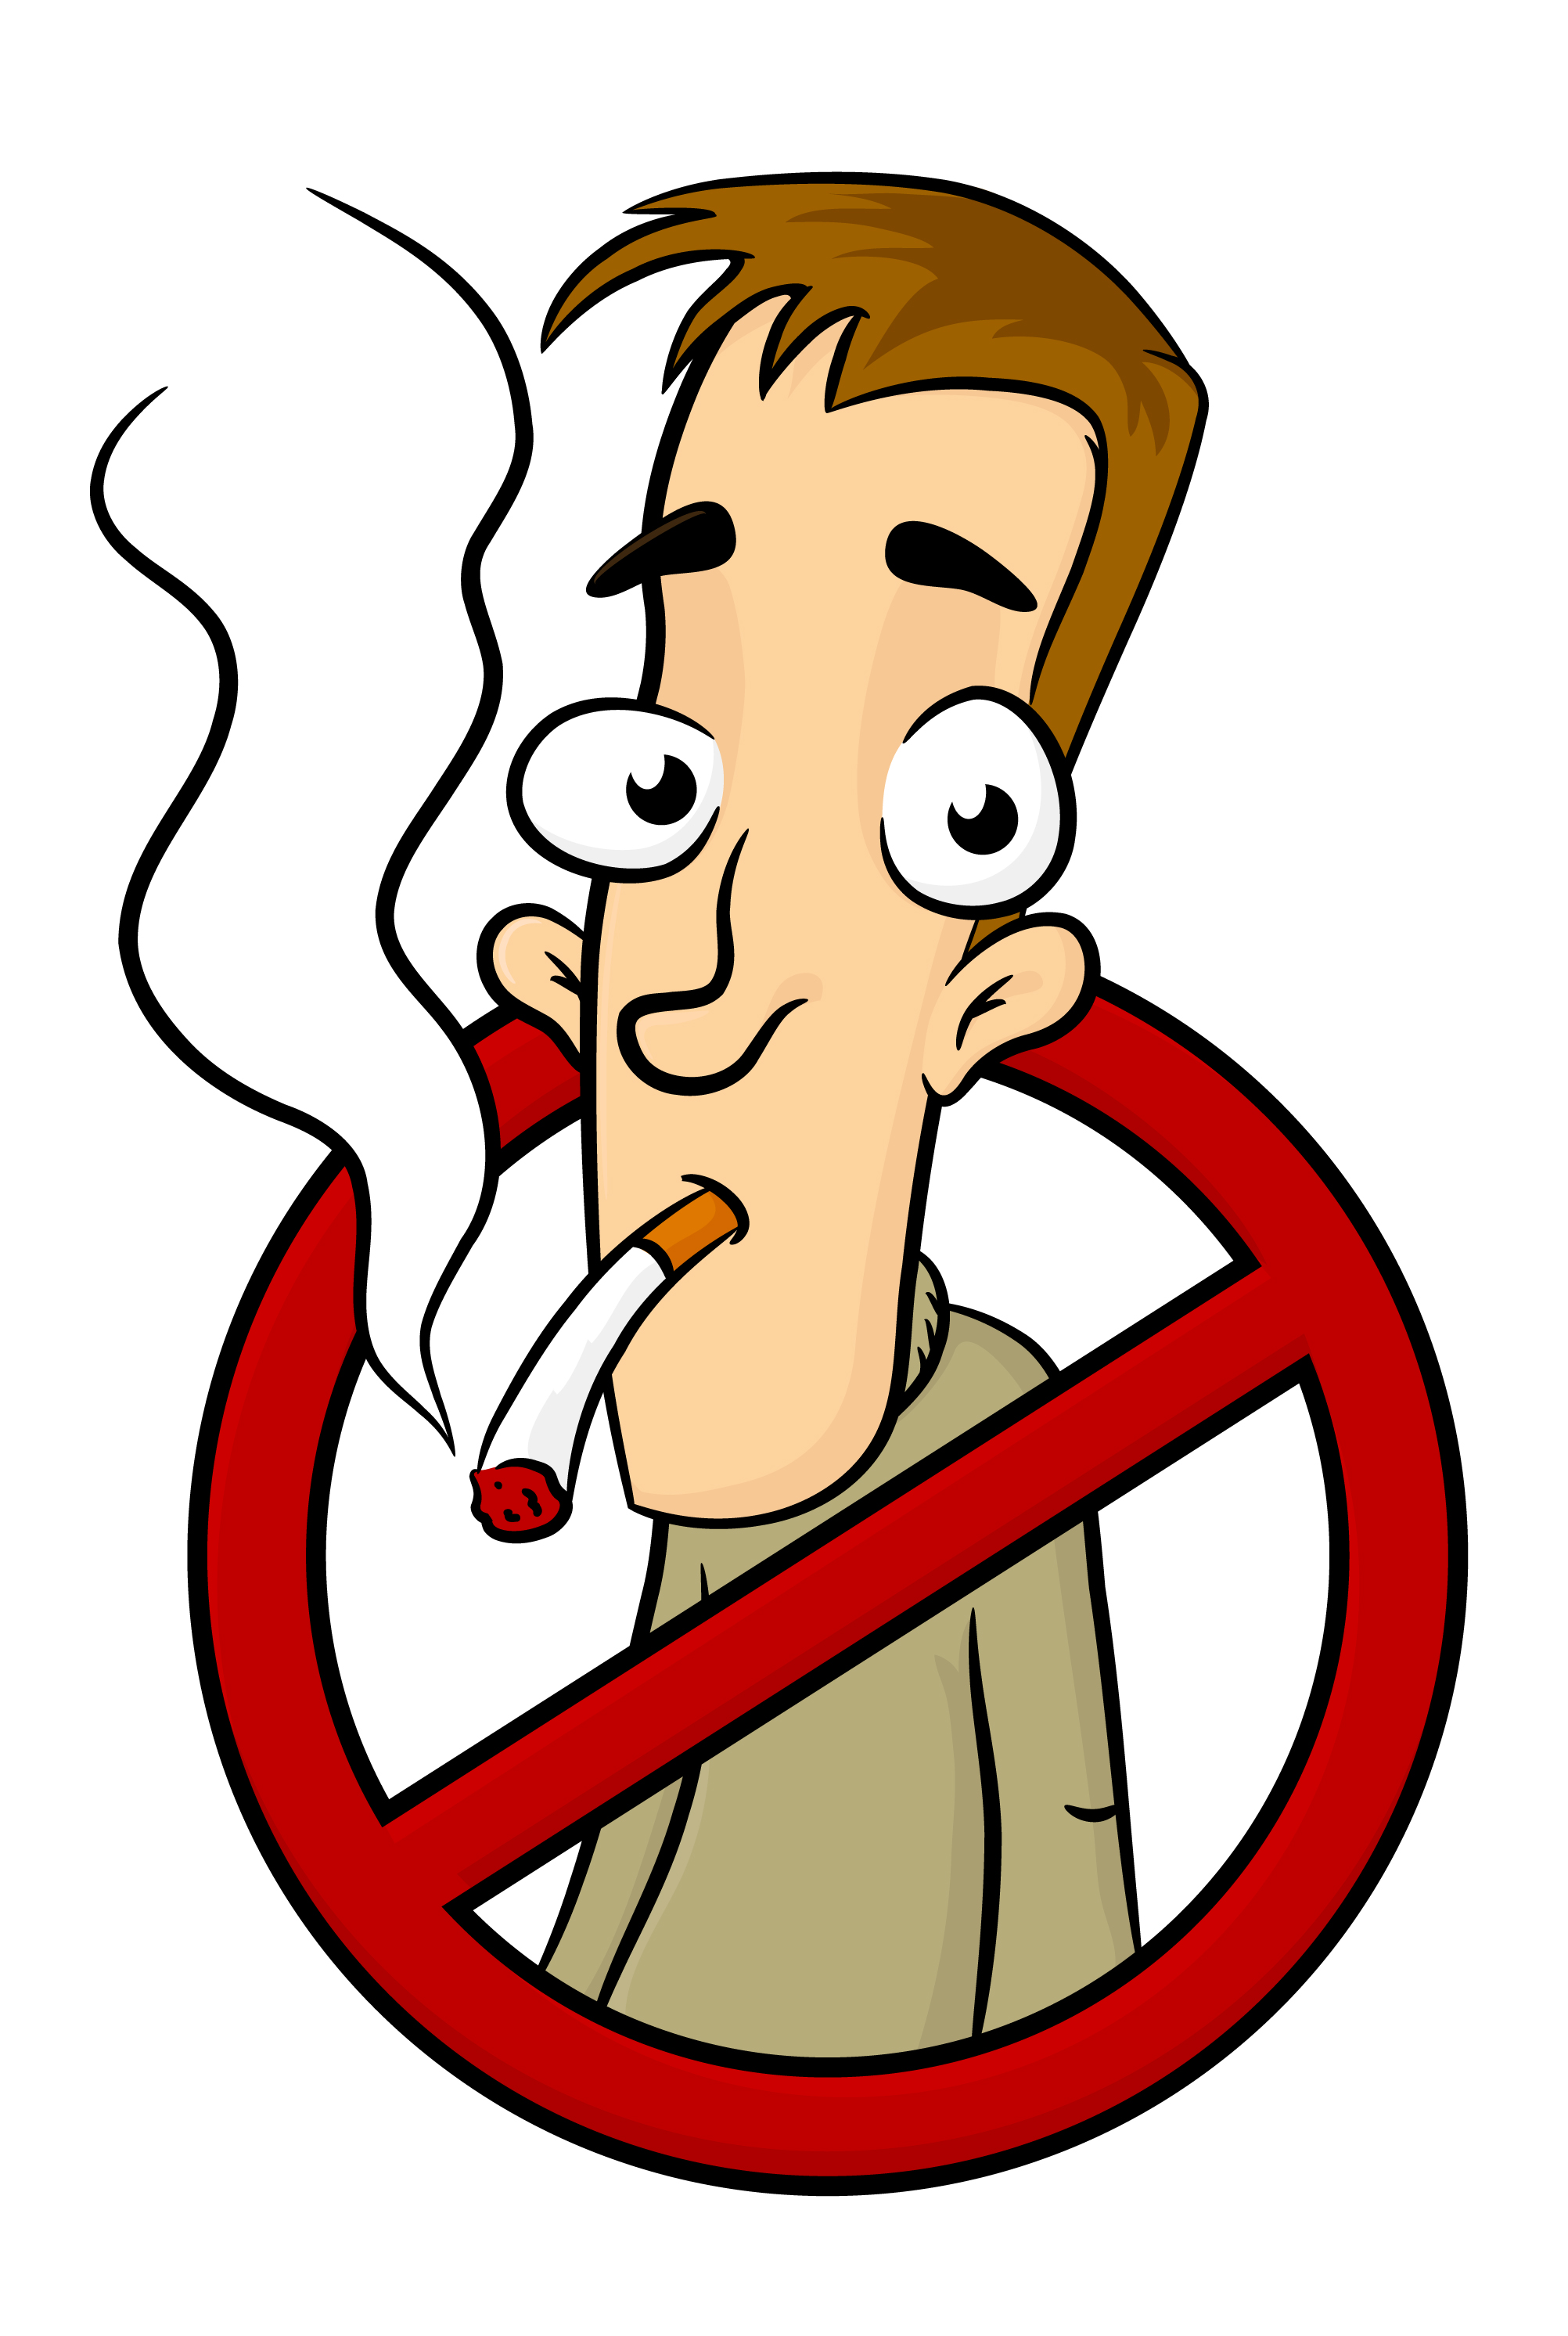 Smoking clipart. Bad